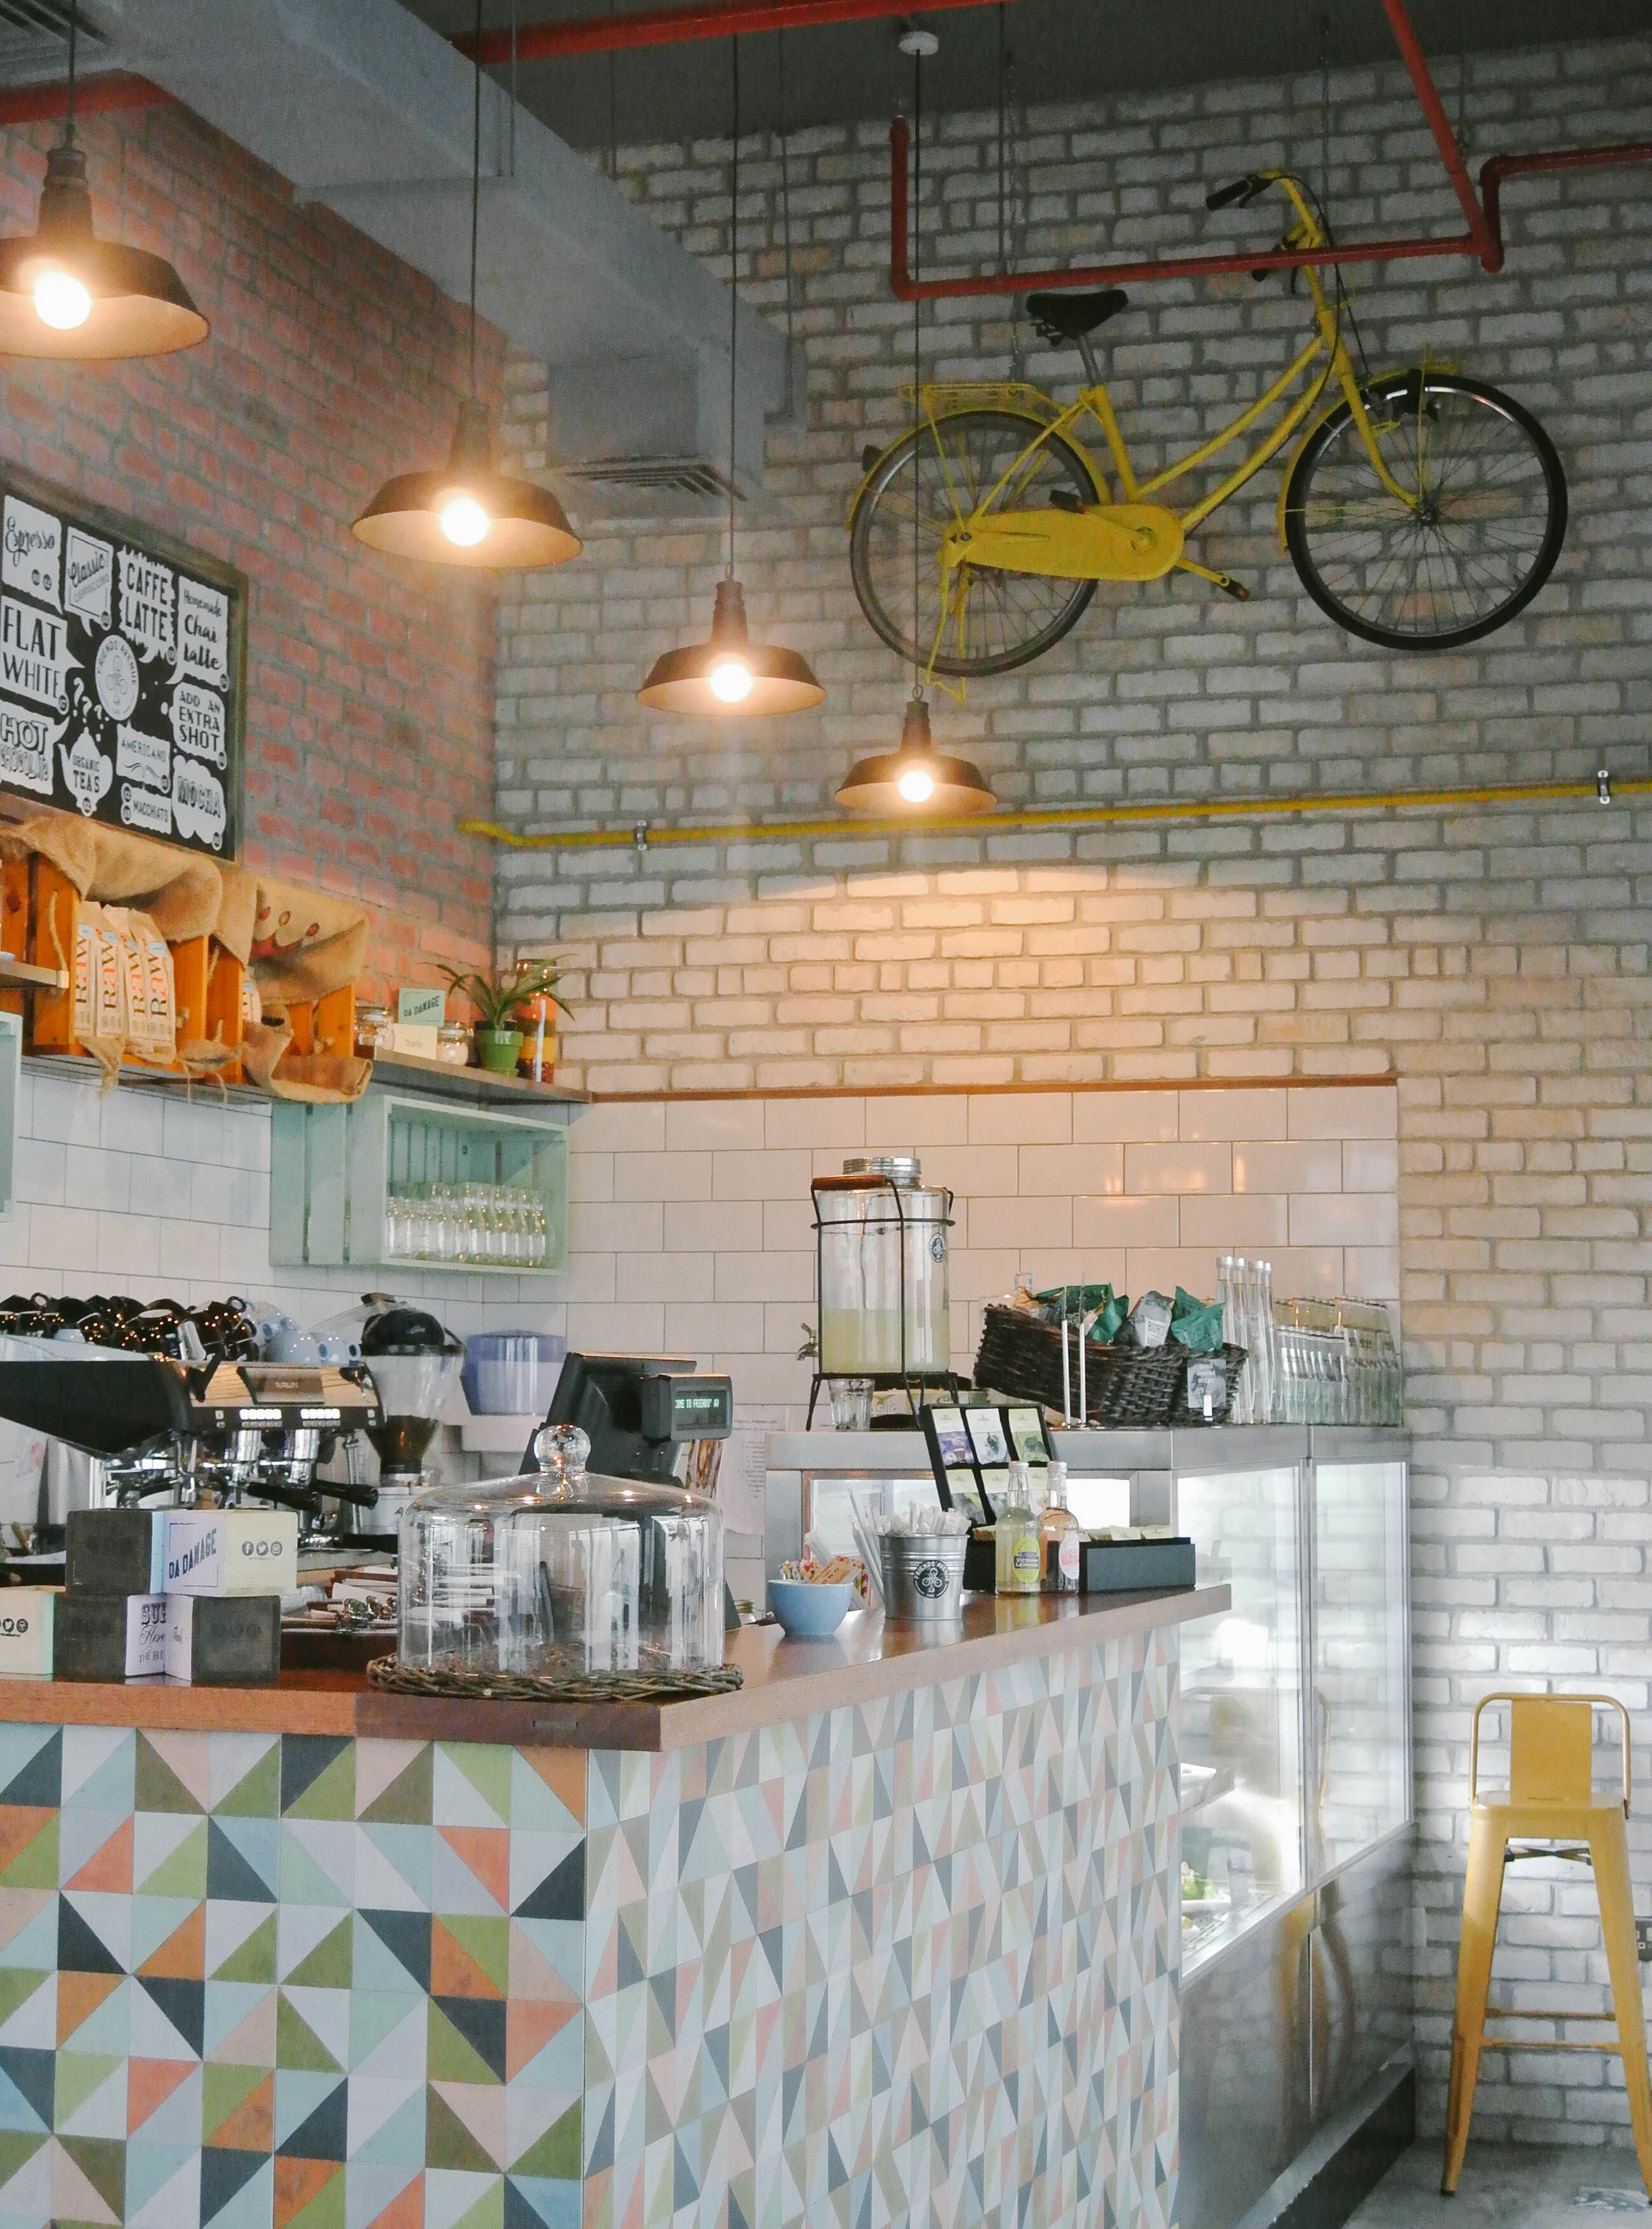 19 cafe interior design inspiration trends of 2017 nytexas - Cafe Interior Design Ideas